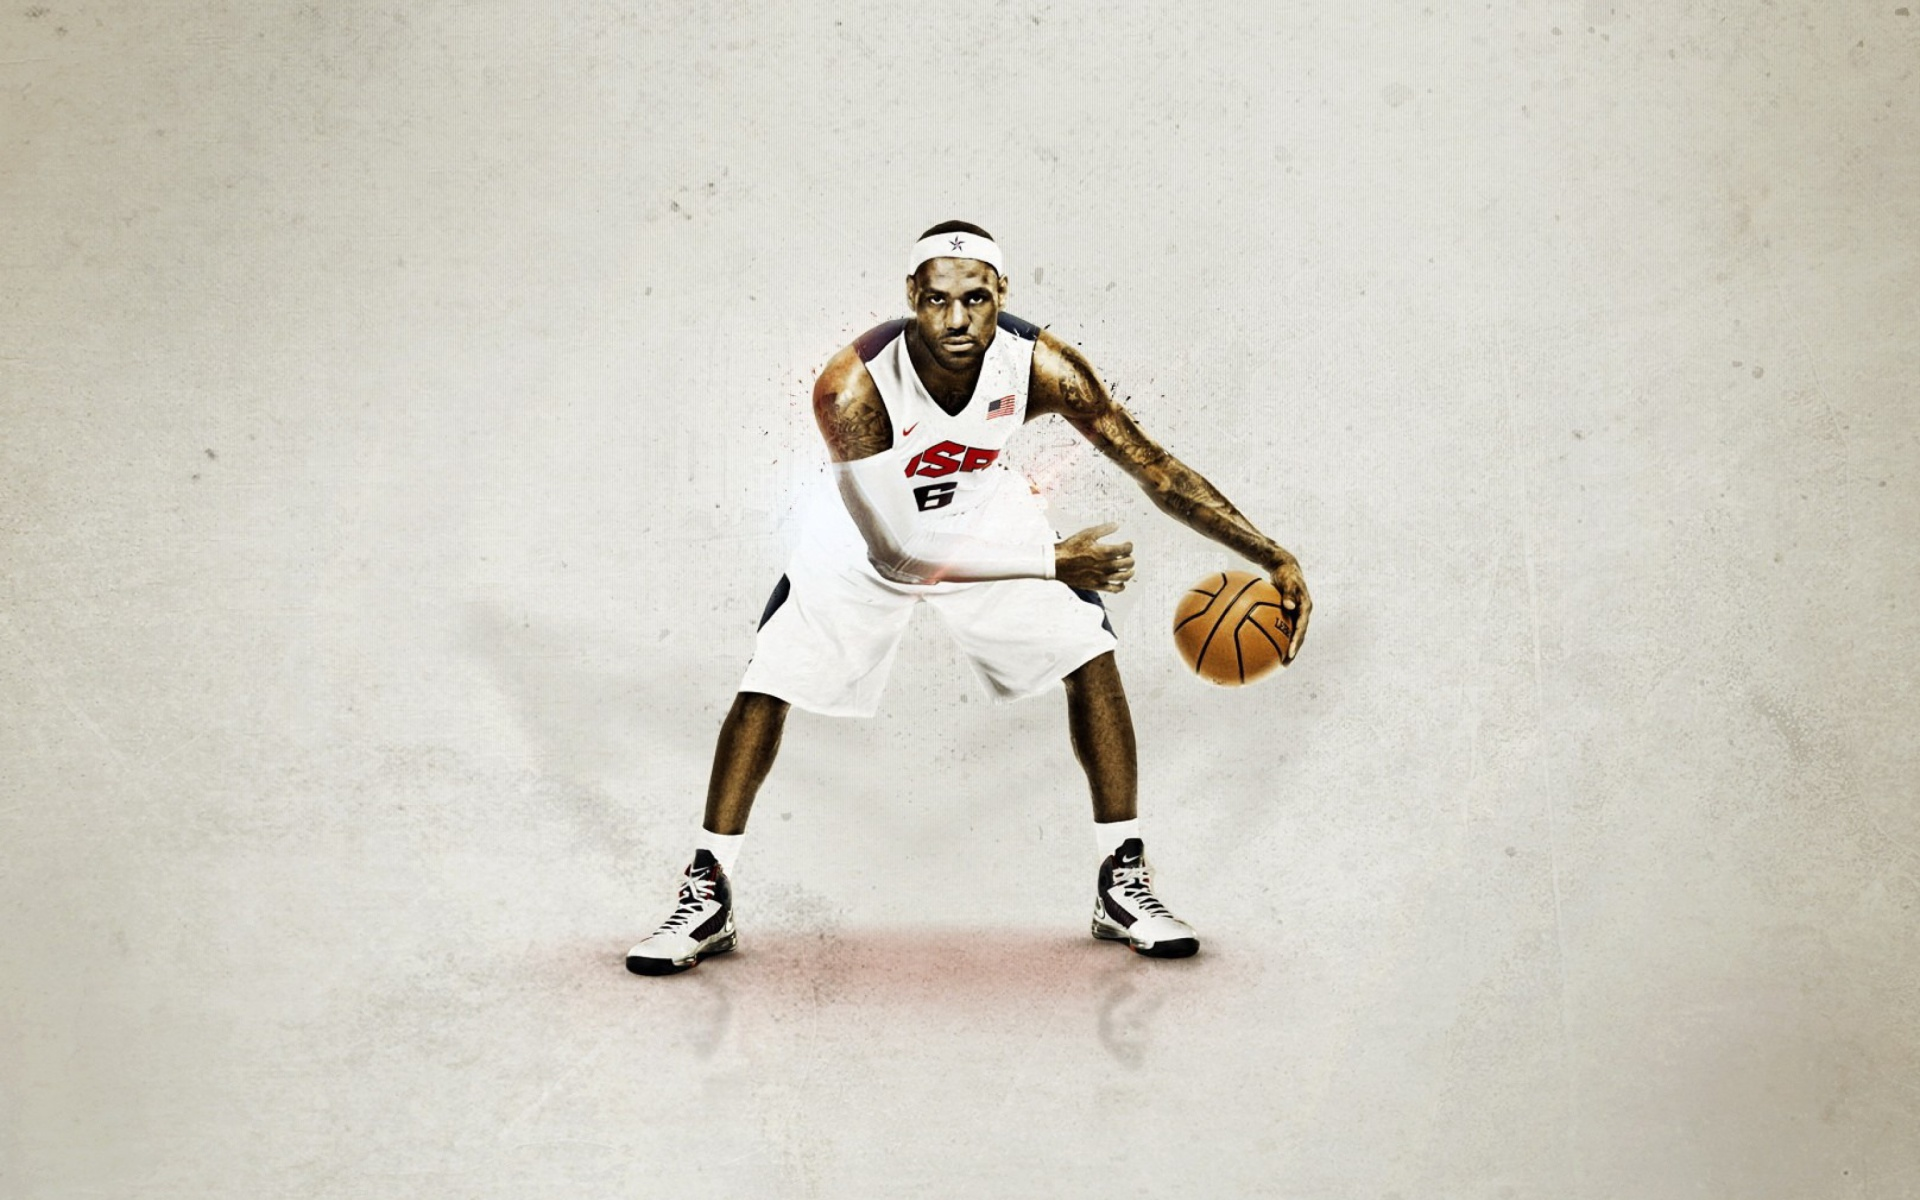 Nike Nba Marvel Wallpaper: Nike USA Basketball Wallpaper For Widescreen Desktop PC